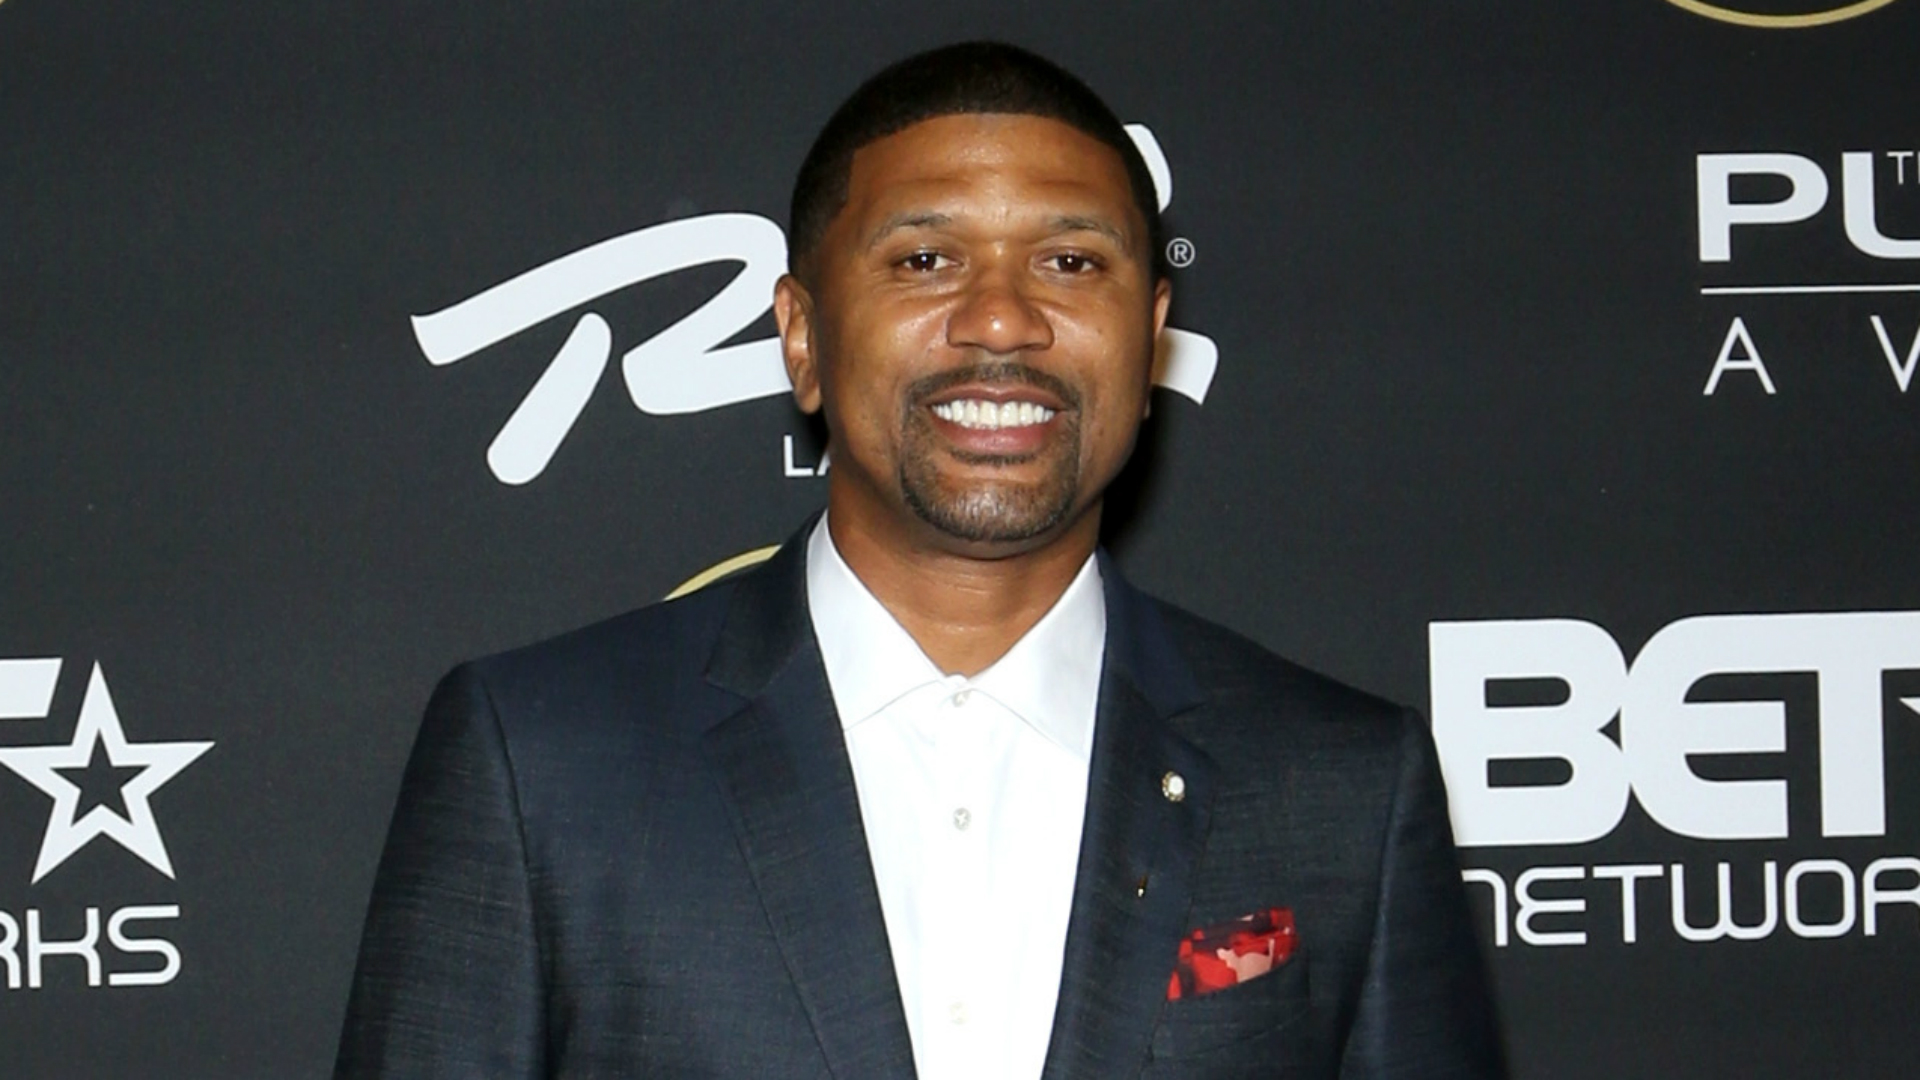 Kobe Bryant reminds Jalen Rose of his 81 point game in hilarious